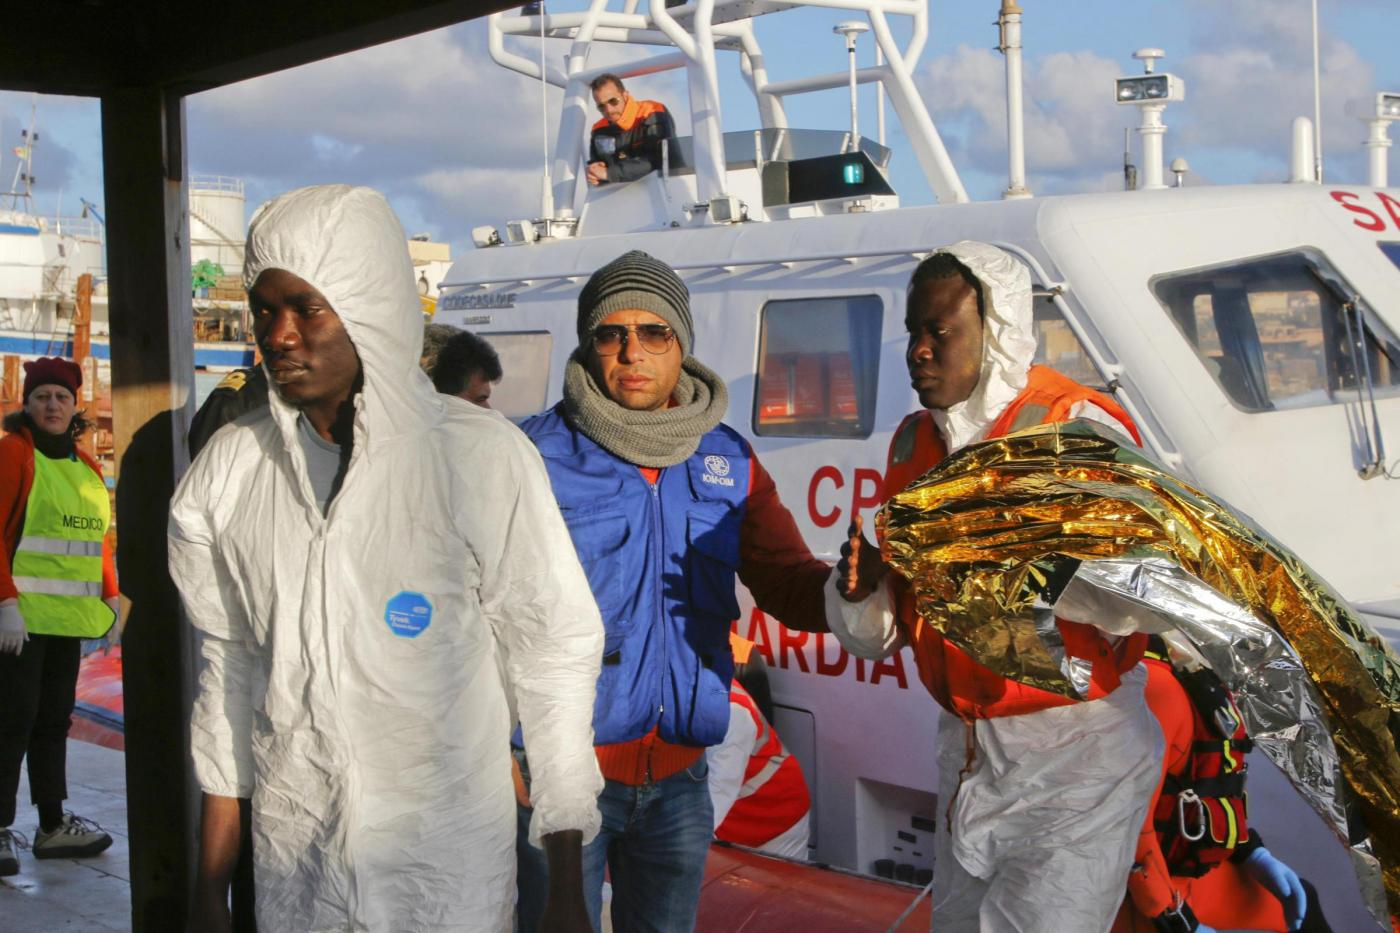 Migrants who survived a shipwreck are escorted as they arrive at the Lampedusa harbour